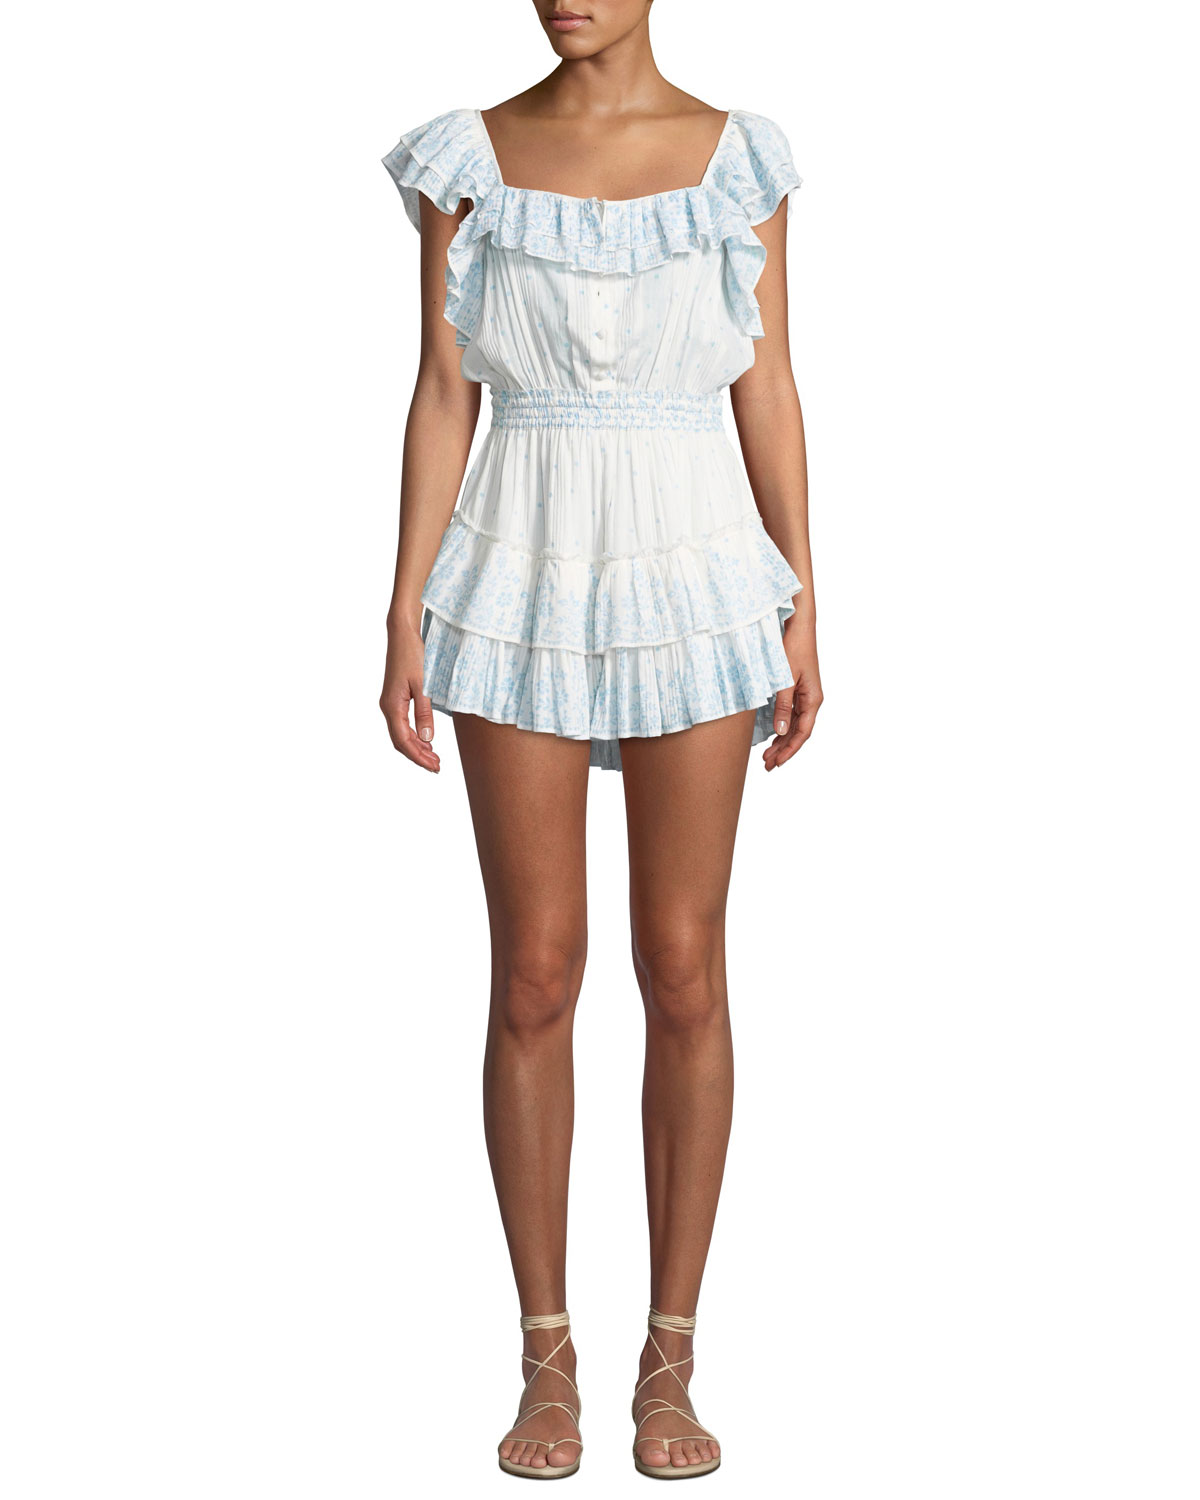 LOVE SHACK FANCY Marina Tiered Floral Ruffle Coverup Dress in Blue